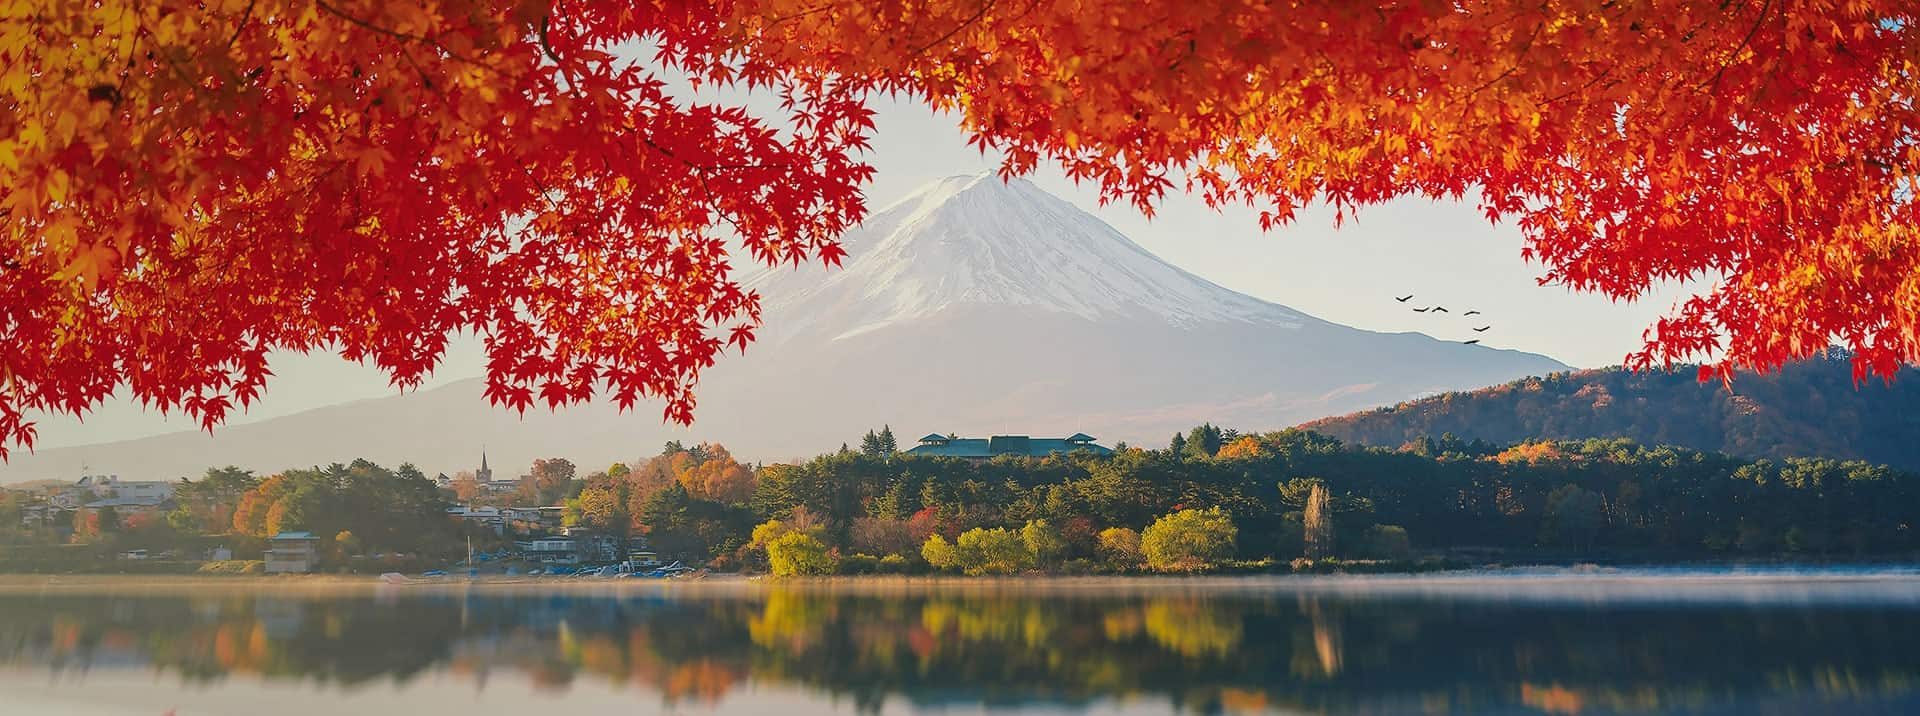 Featured-Image_JapanBoarding_1920x716-min